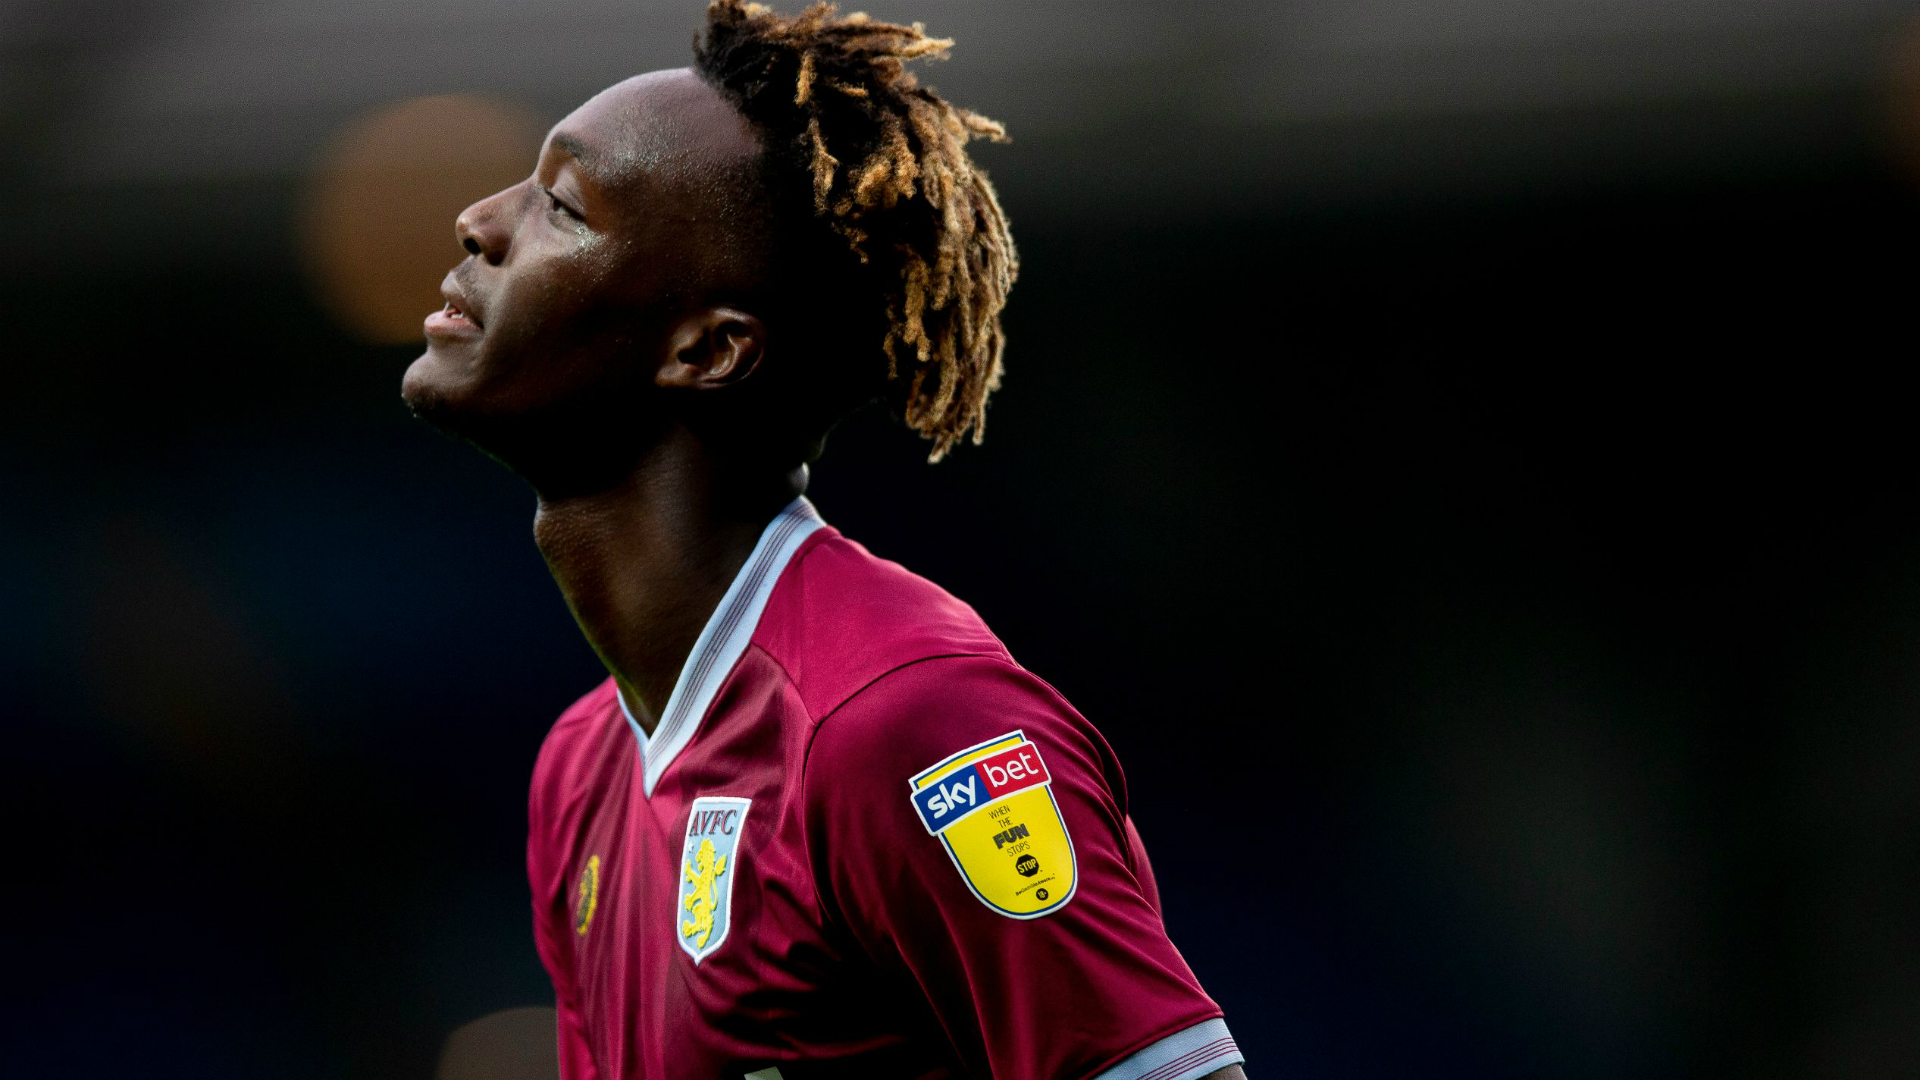 Tammy Abraham should fully recover for Aston Villa's playoff games